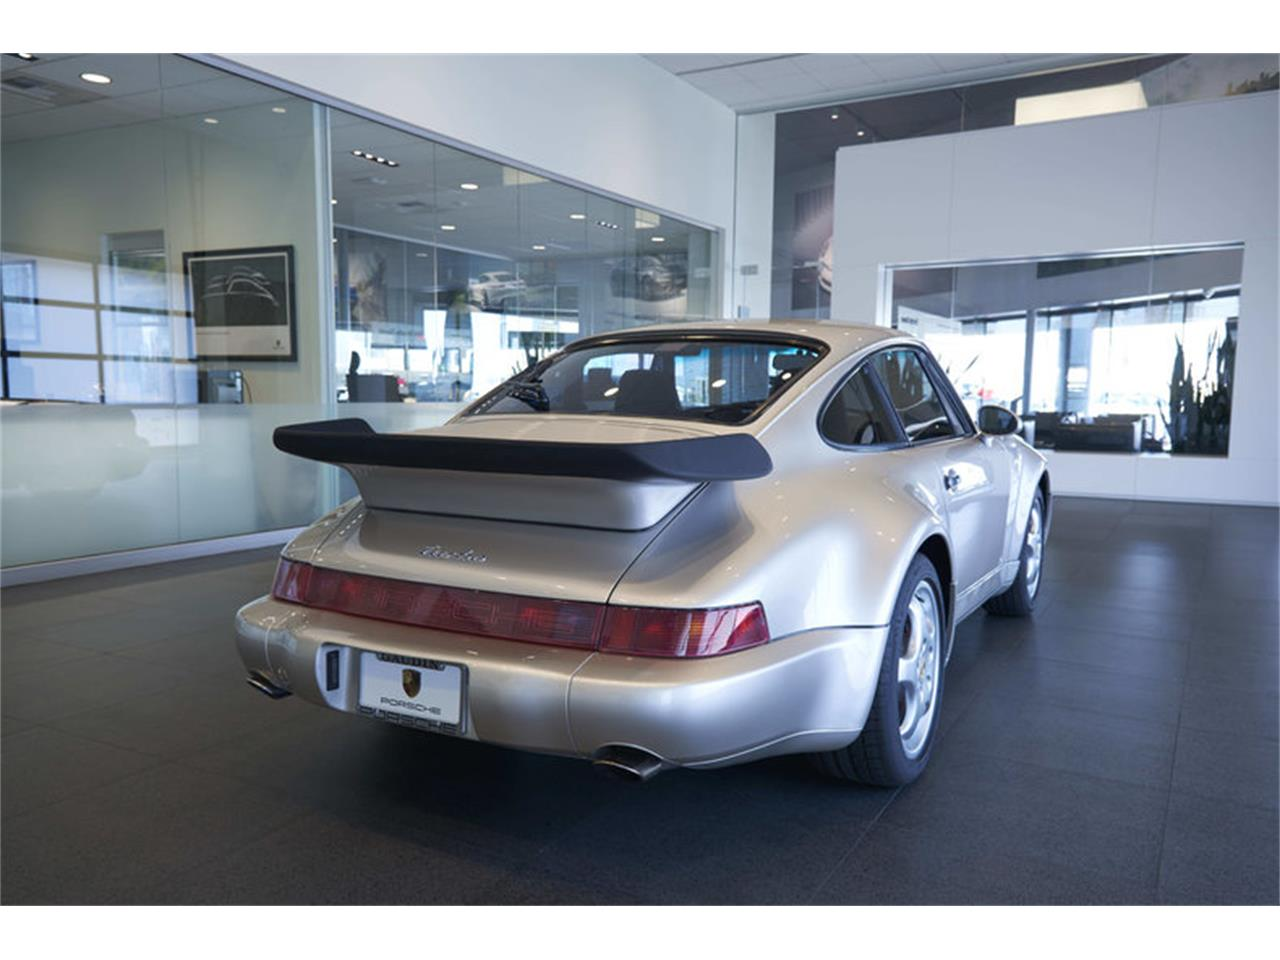 Large Picture of '91 Porsche 911 Turbo - $149,911.00 Offered by Gaudin Porsche of Las Vegas - LIVG